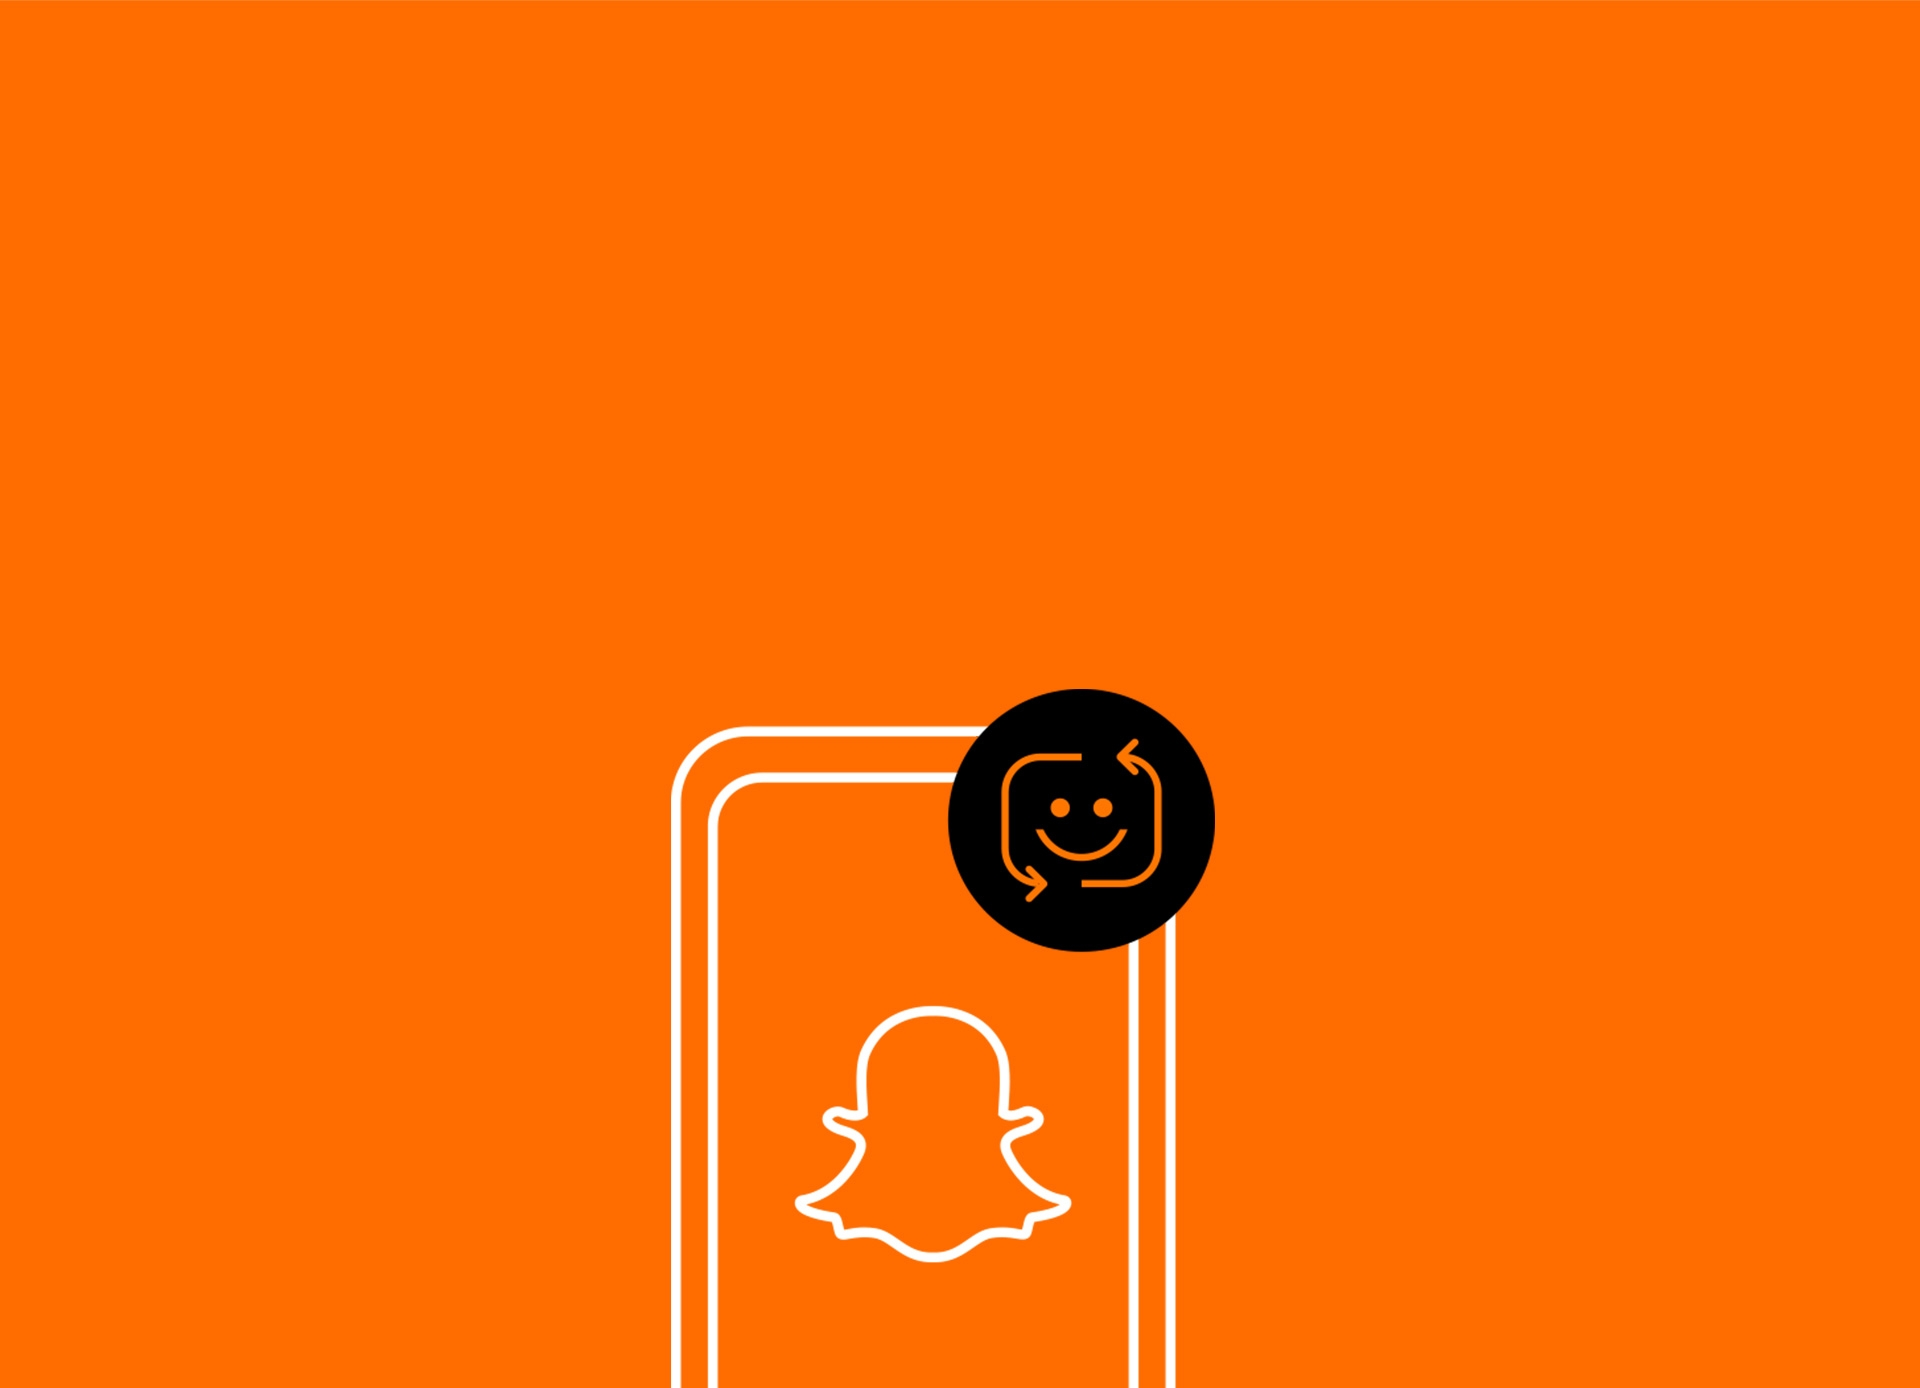 Snapchat logo on an orange background